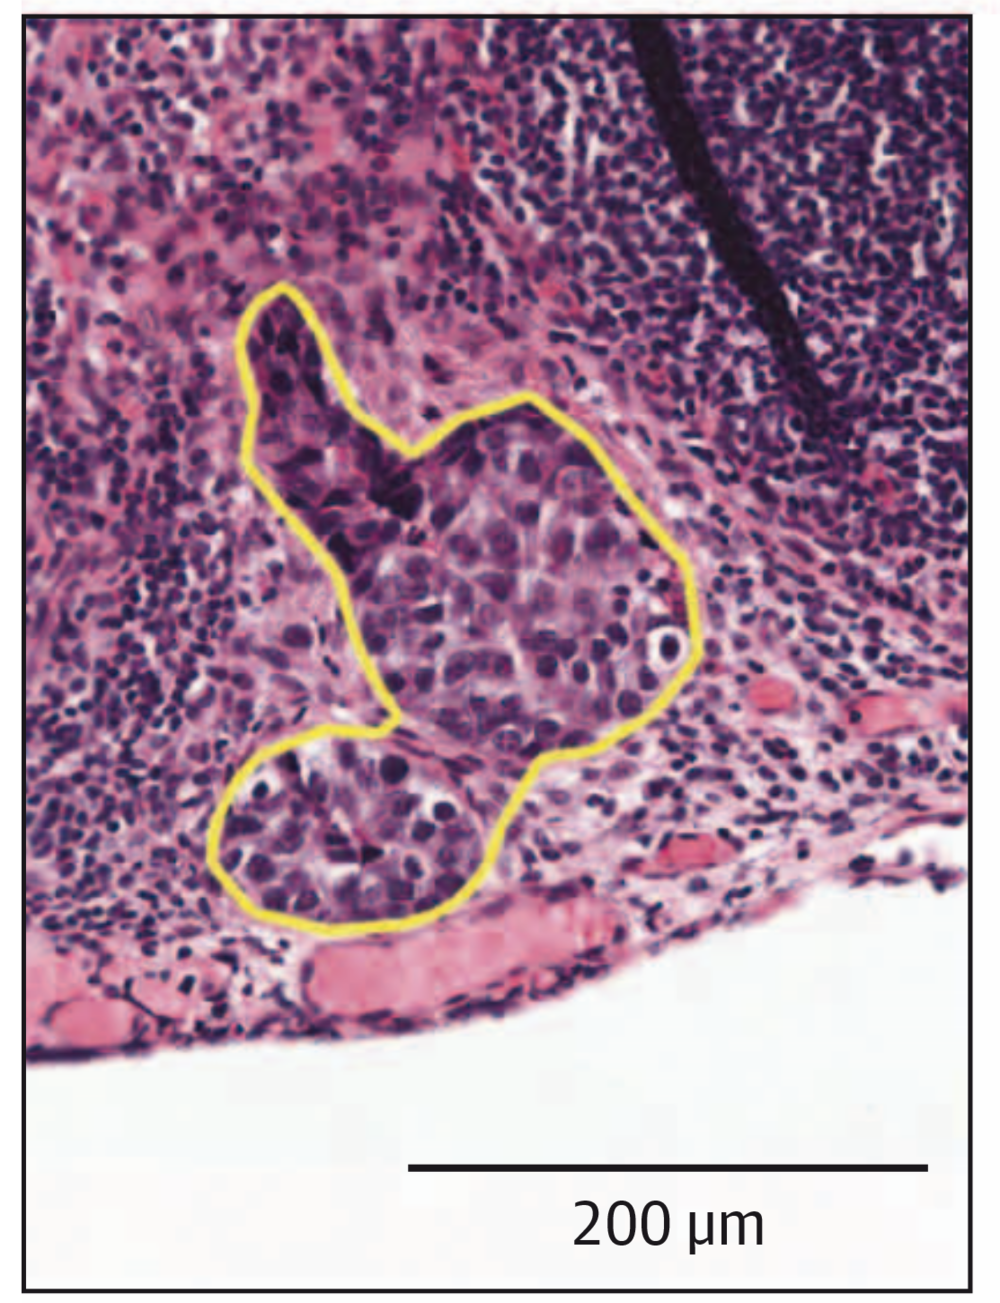 Hand-labeled focus of metastatic breast cancer in lymph node slide.